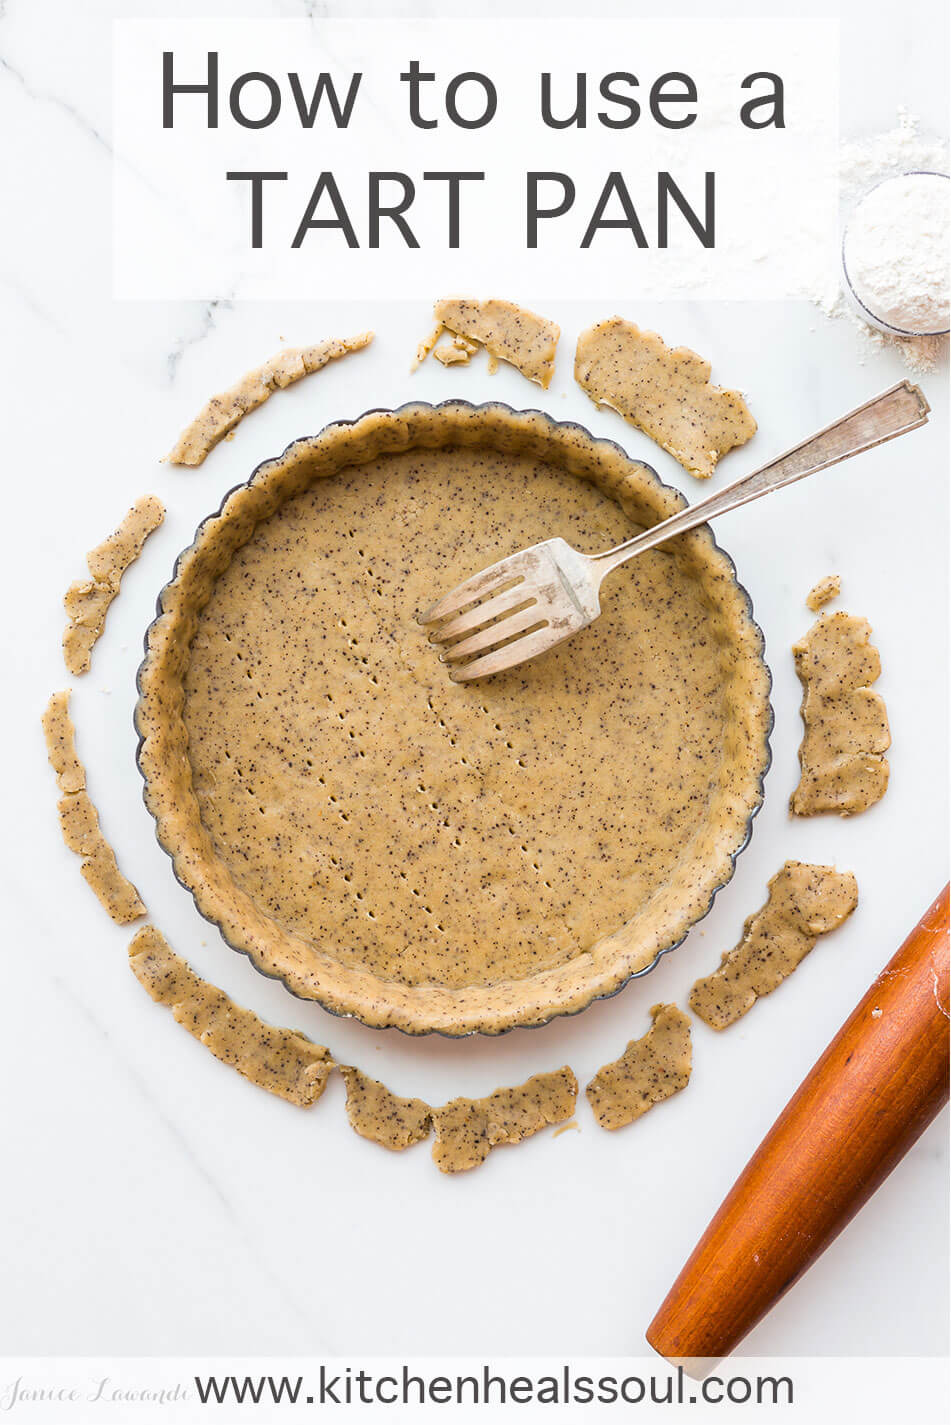 A tart pan with tart dough fitted inside and a fork to prick the pastry to allow air and steam to escape during blind baking